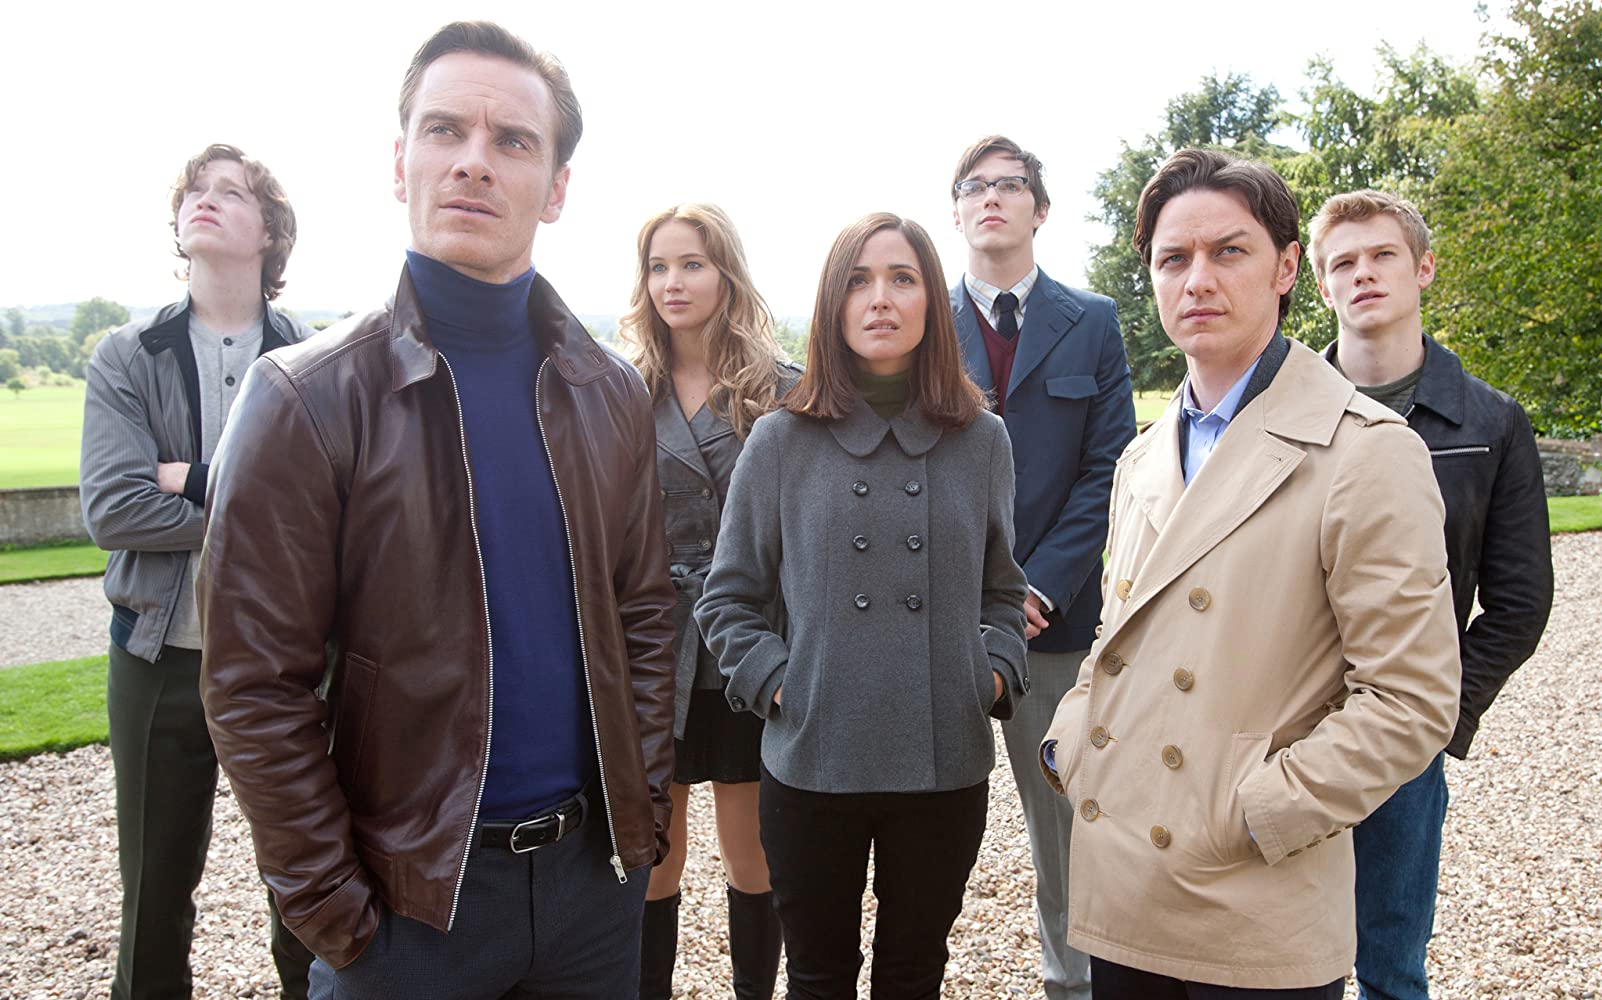 Rose Byrne, Nicholas Hoult, James McAvoy, Michael Fassbender, Lucas Till, Jennifer Lawrence, and Caleb Landry Jones in X: First Class (2011)